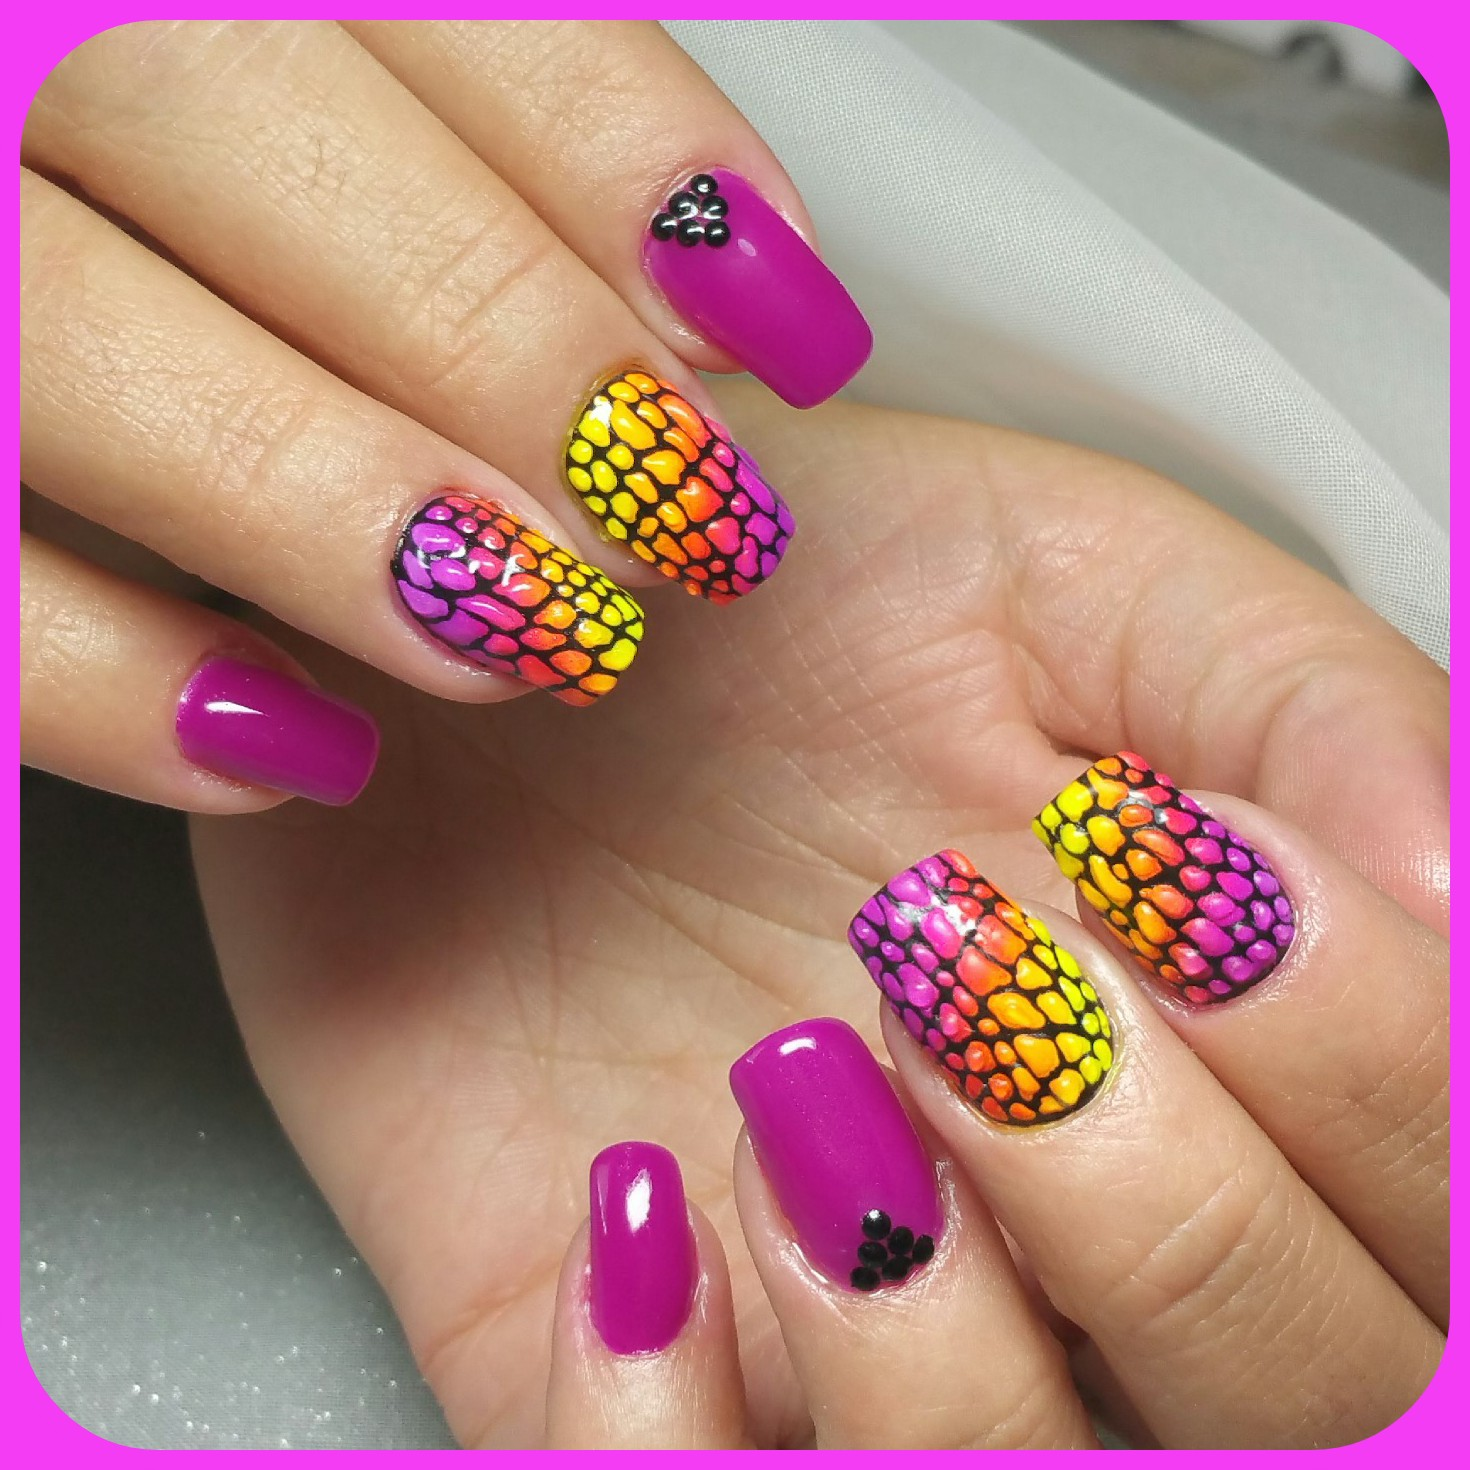 File:Neon Nails.jpg - Wikimedia Commons